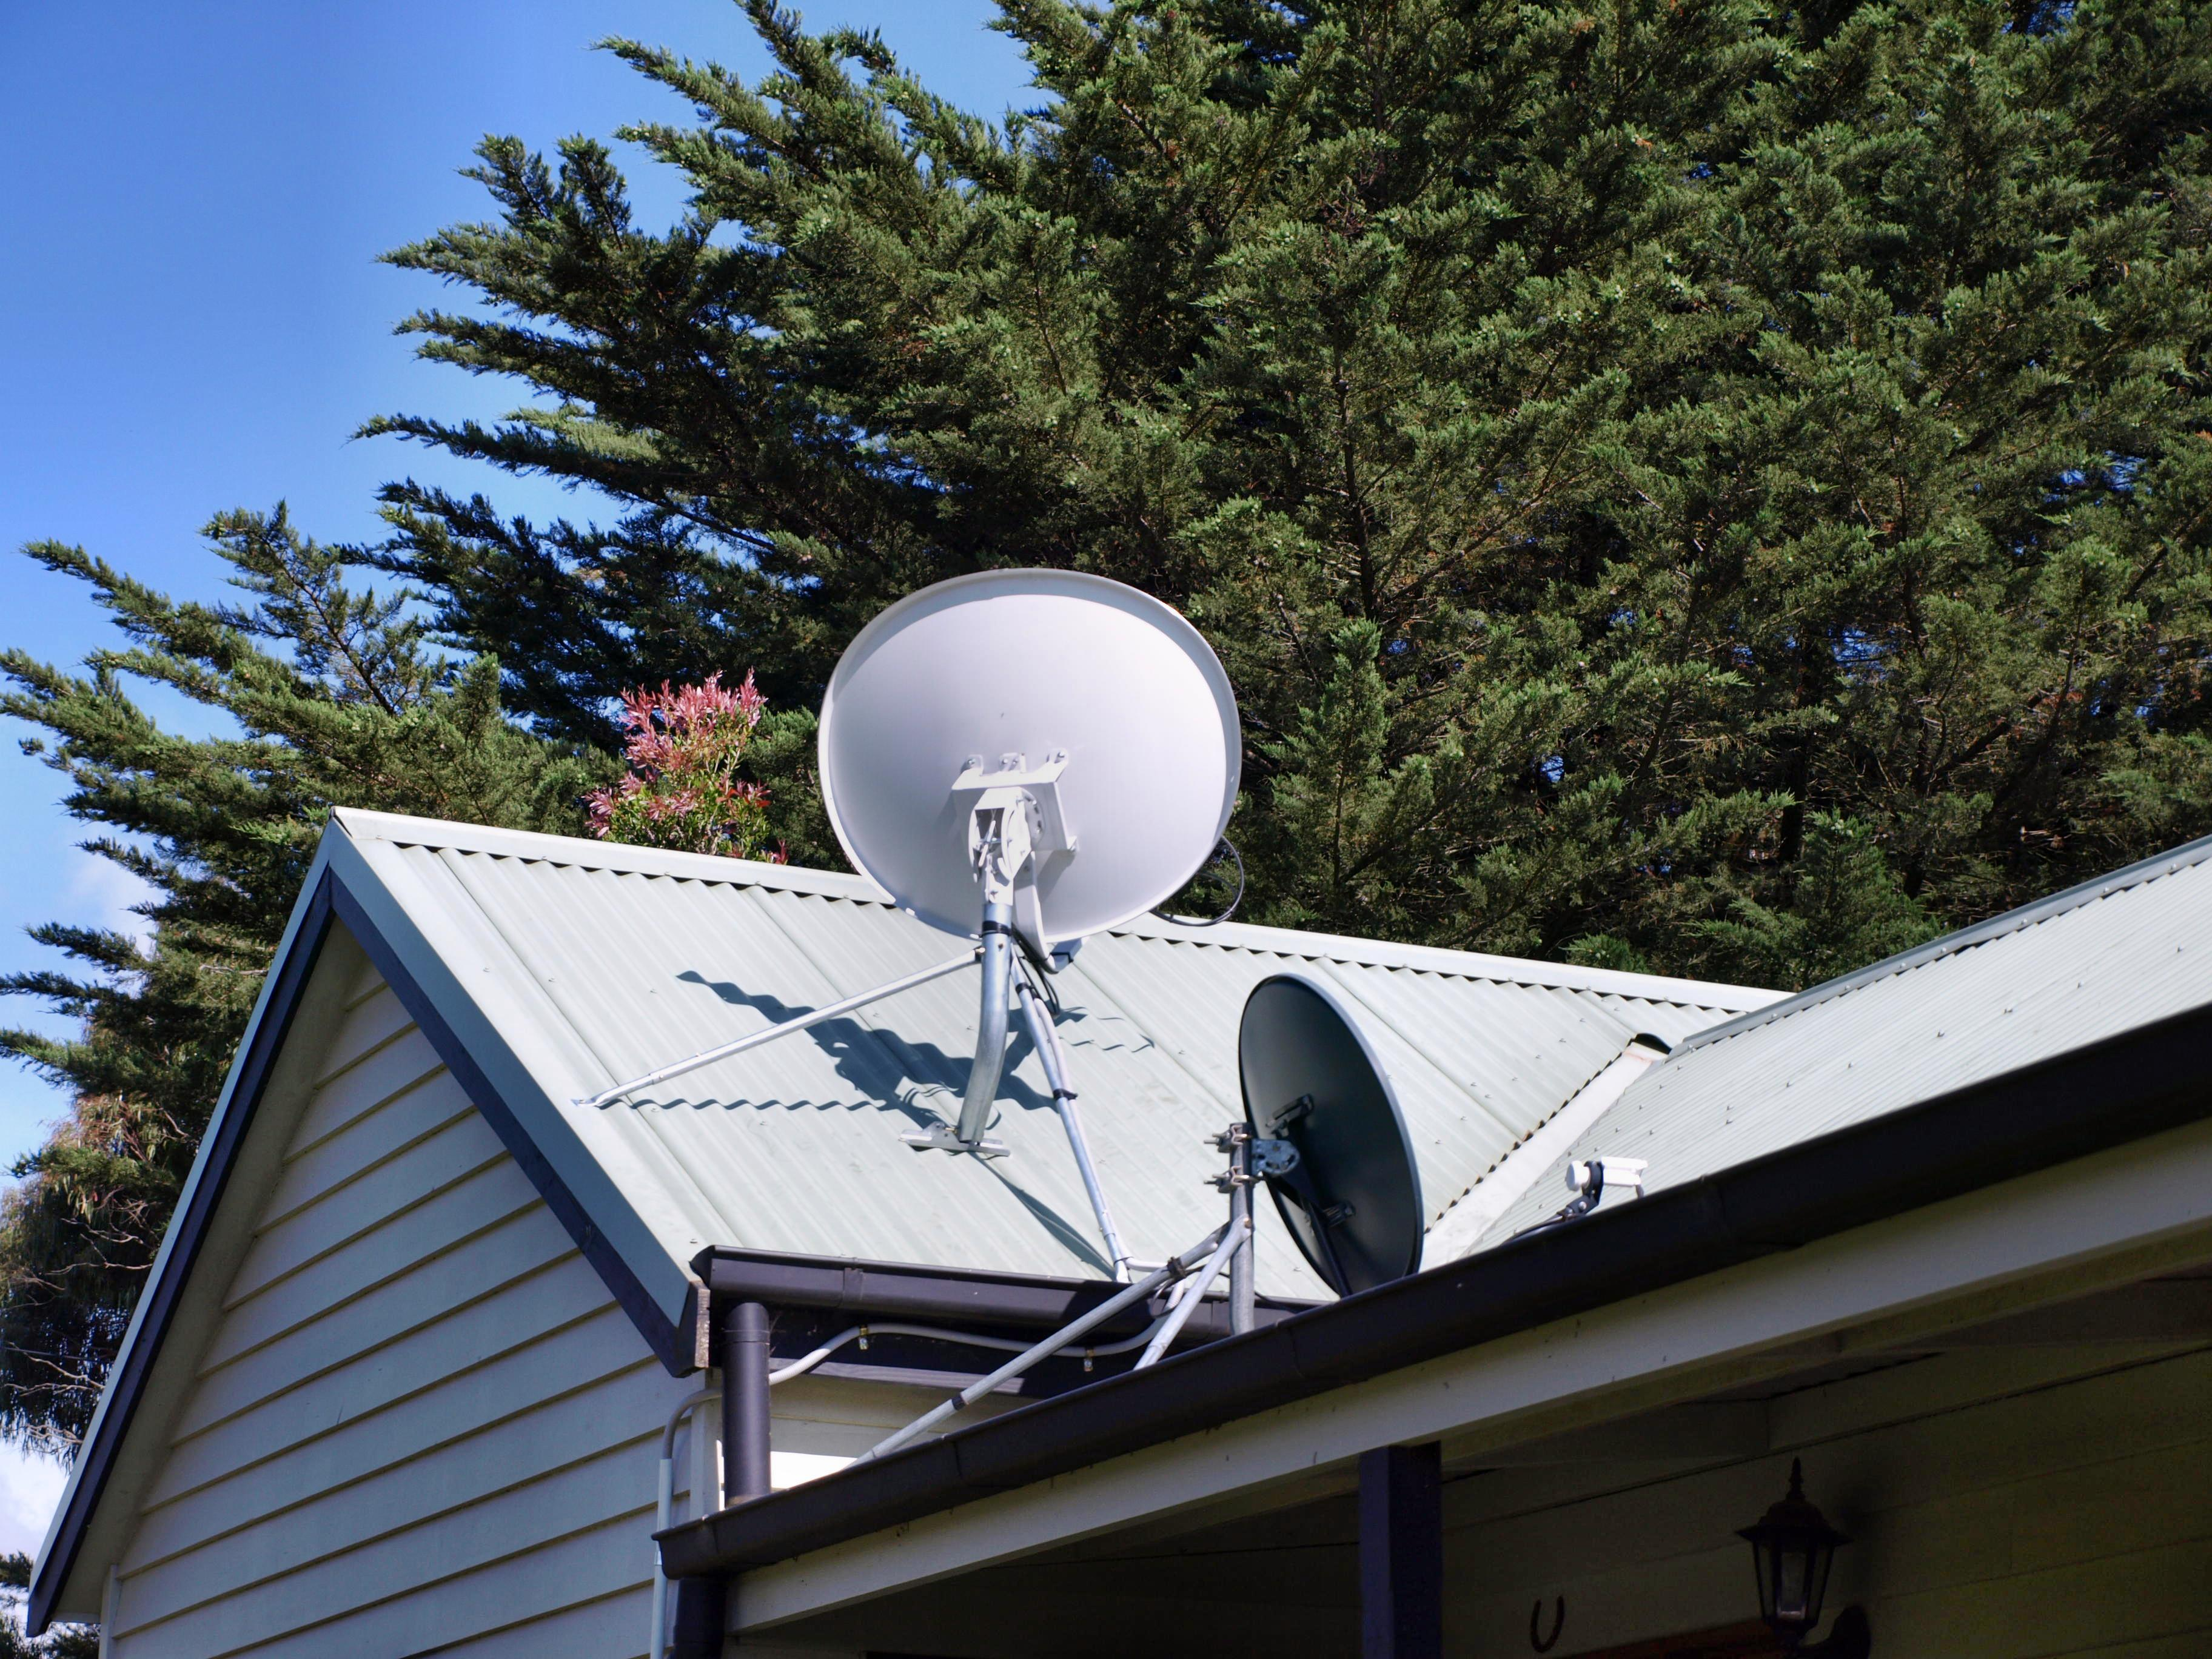 This should be satellite-dish.jpeg.  Is it missing?